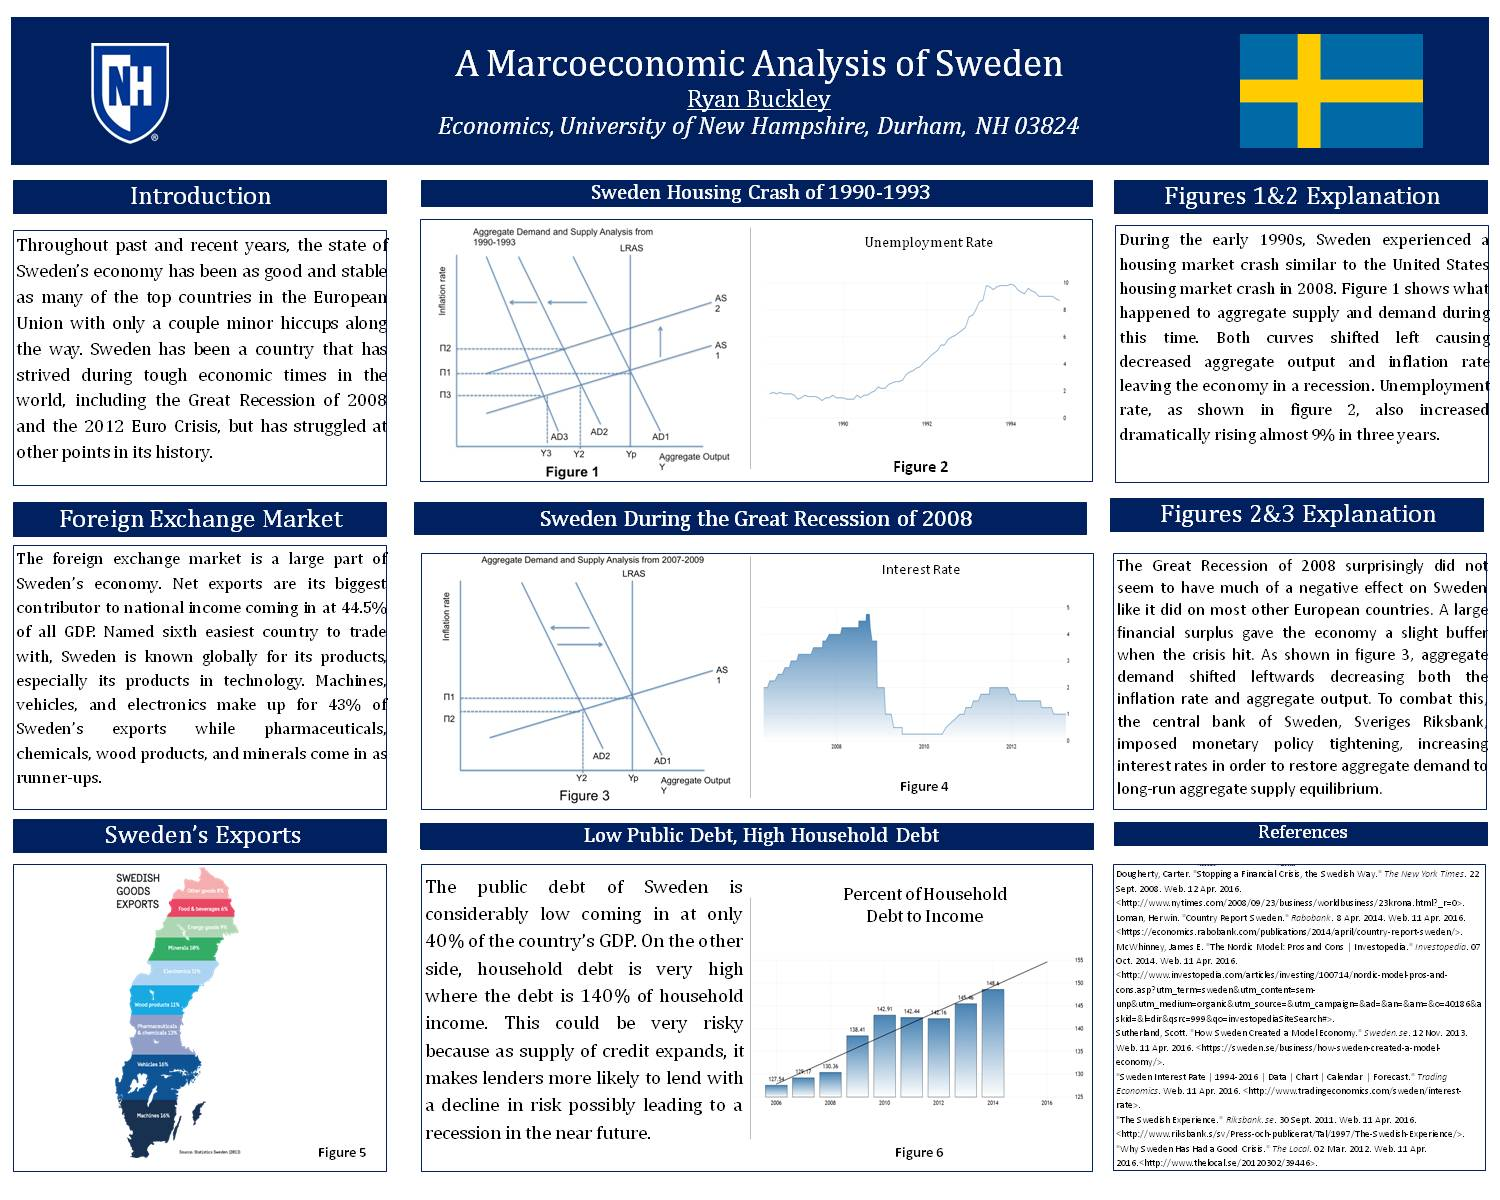 A Macroeconomic Analysis Of Sweden by rmb2003